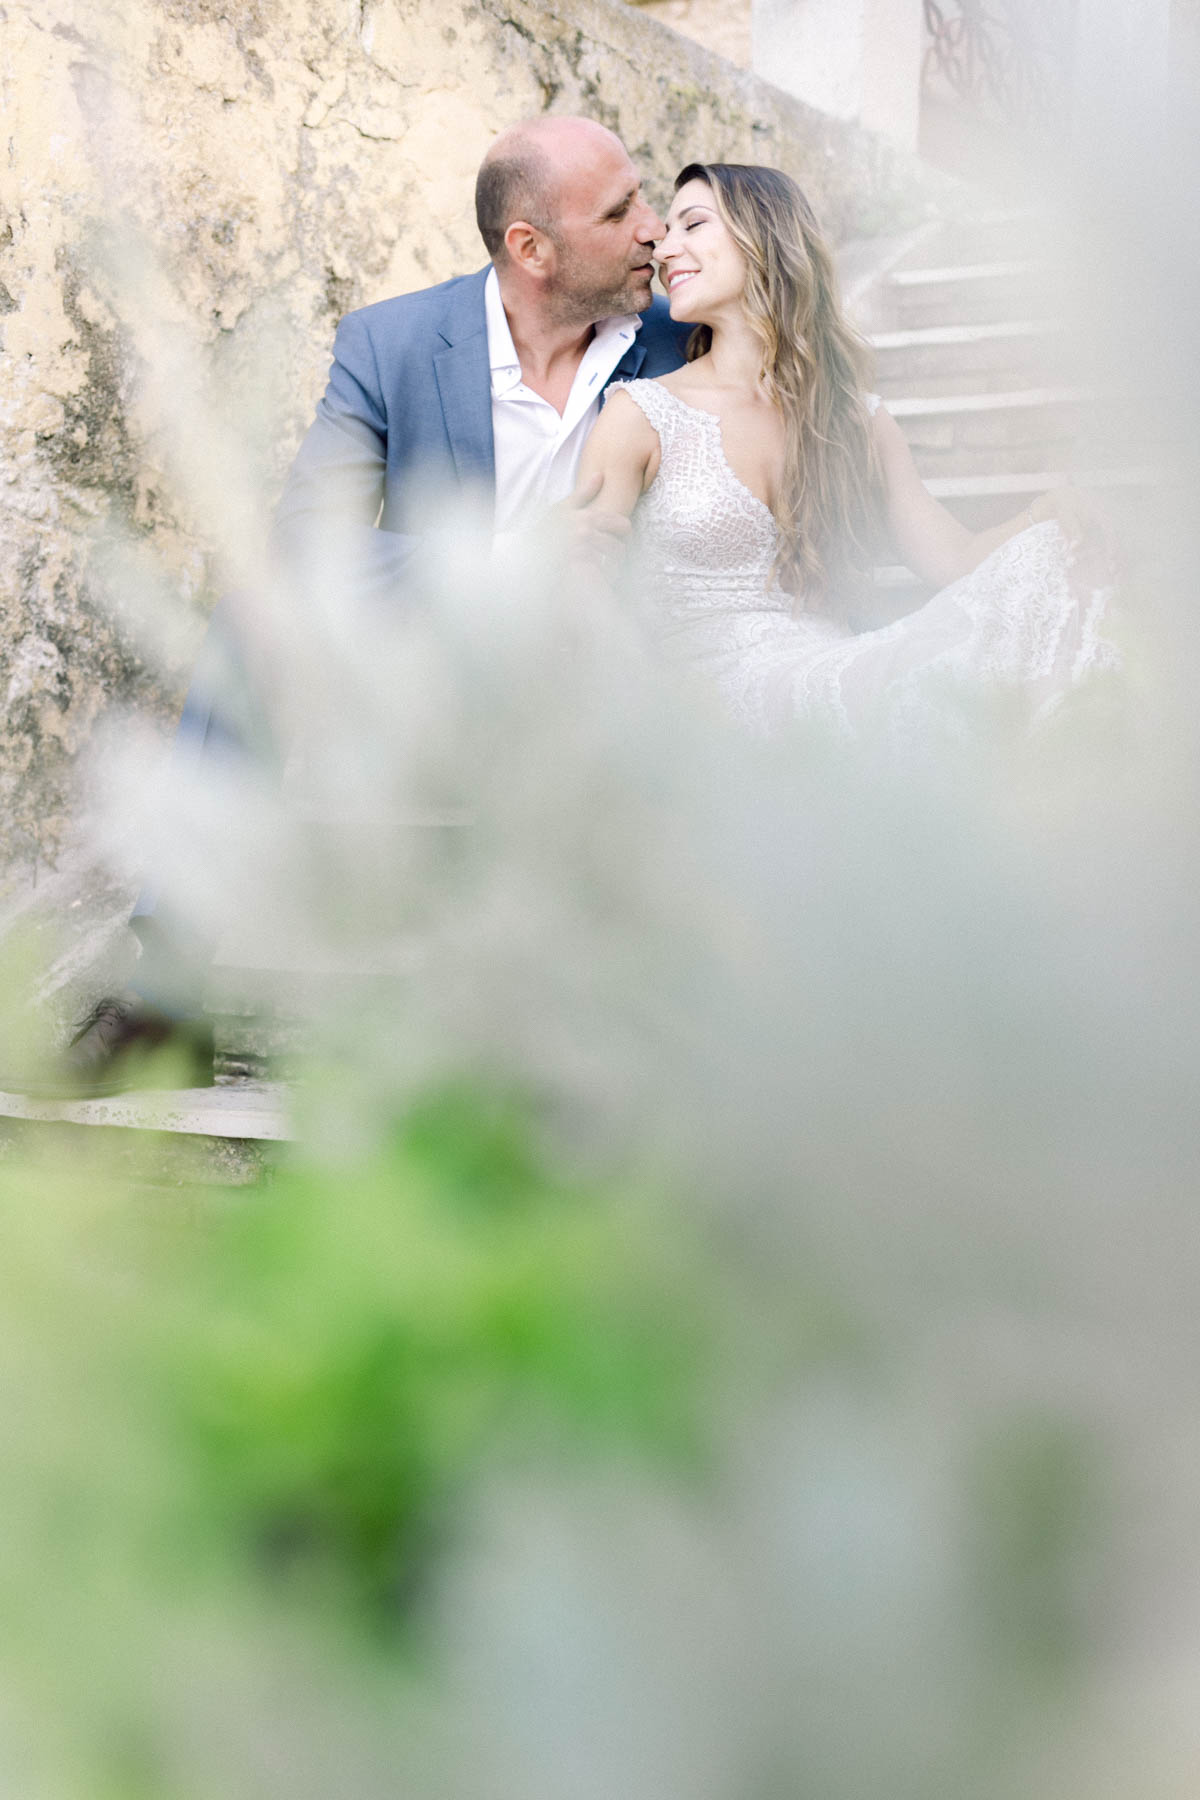 Next Day Session of Marina and Petros  by Vicky and Nikiforos Photography Studio